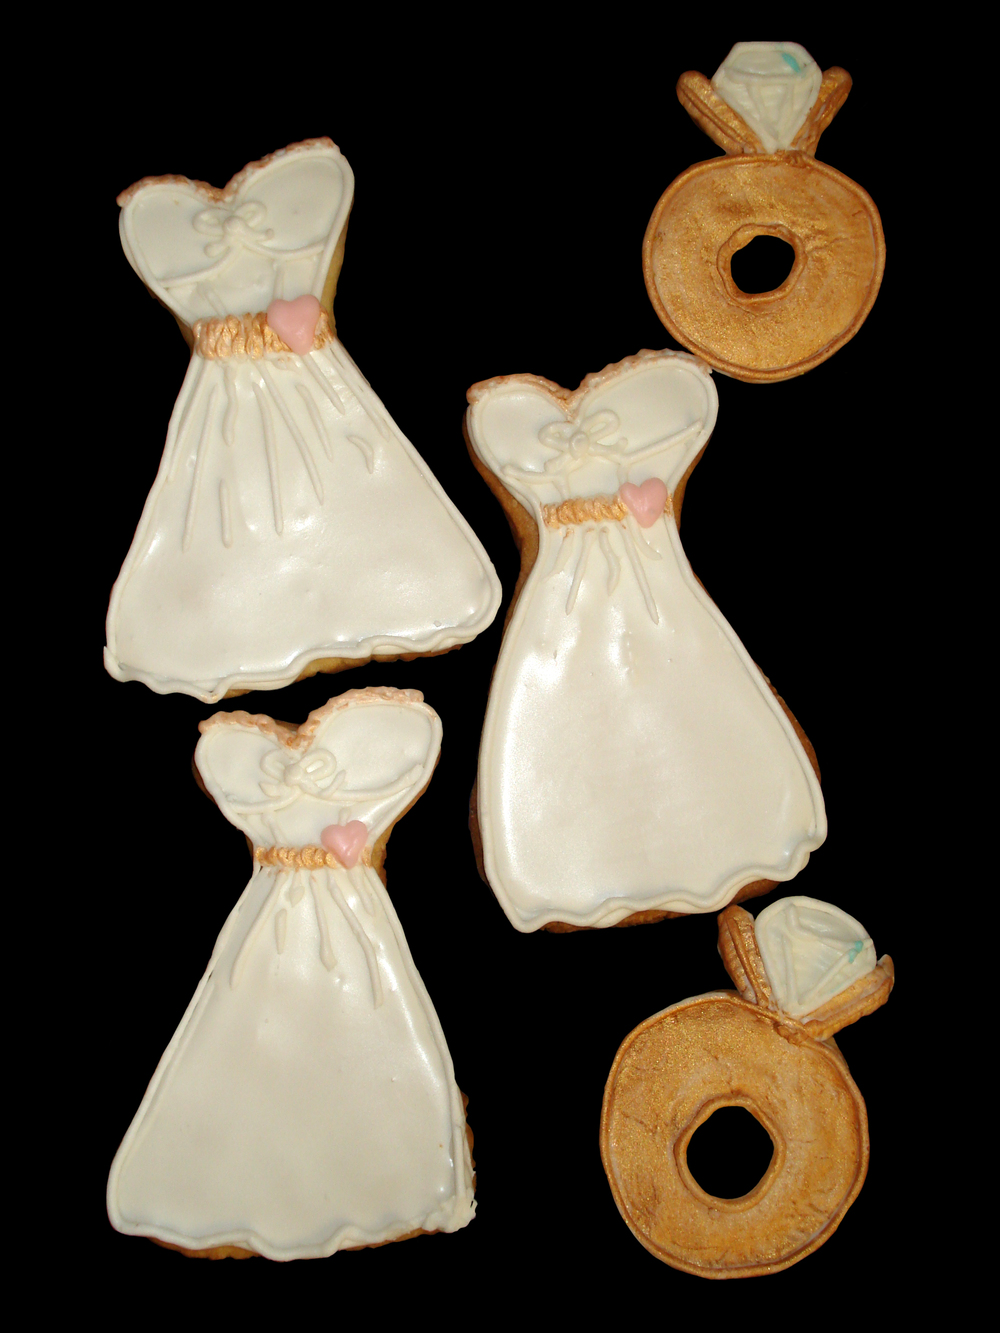 Cookie Wedding Ring Dress.jpg